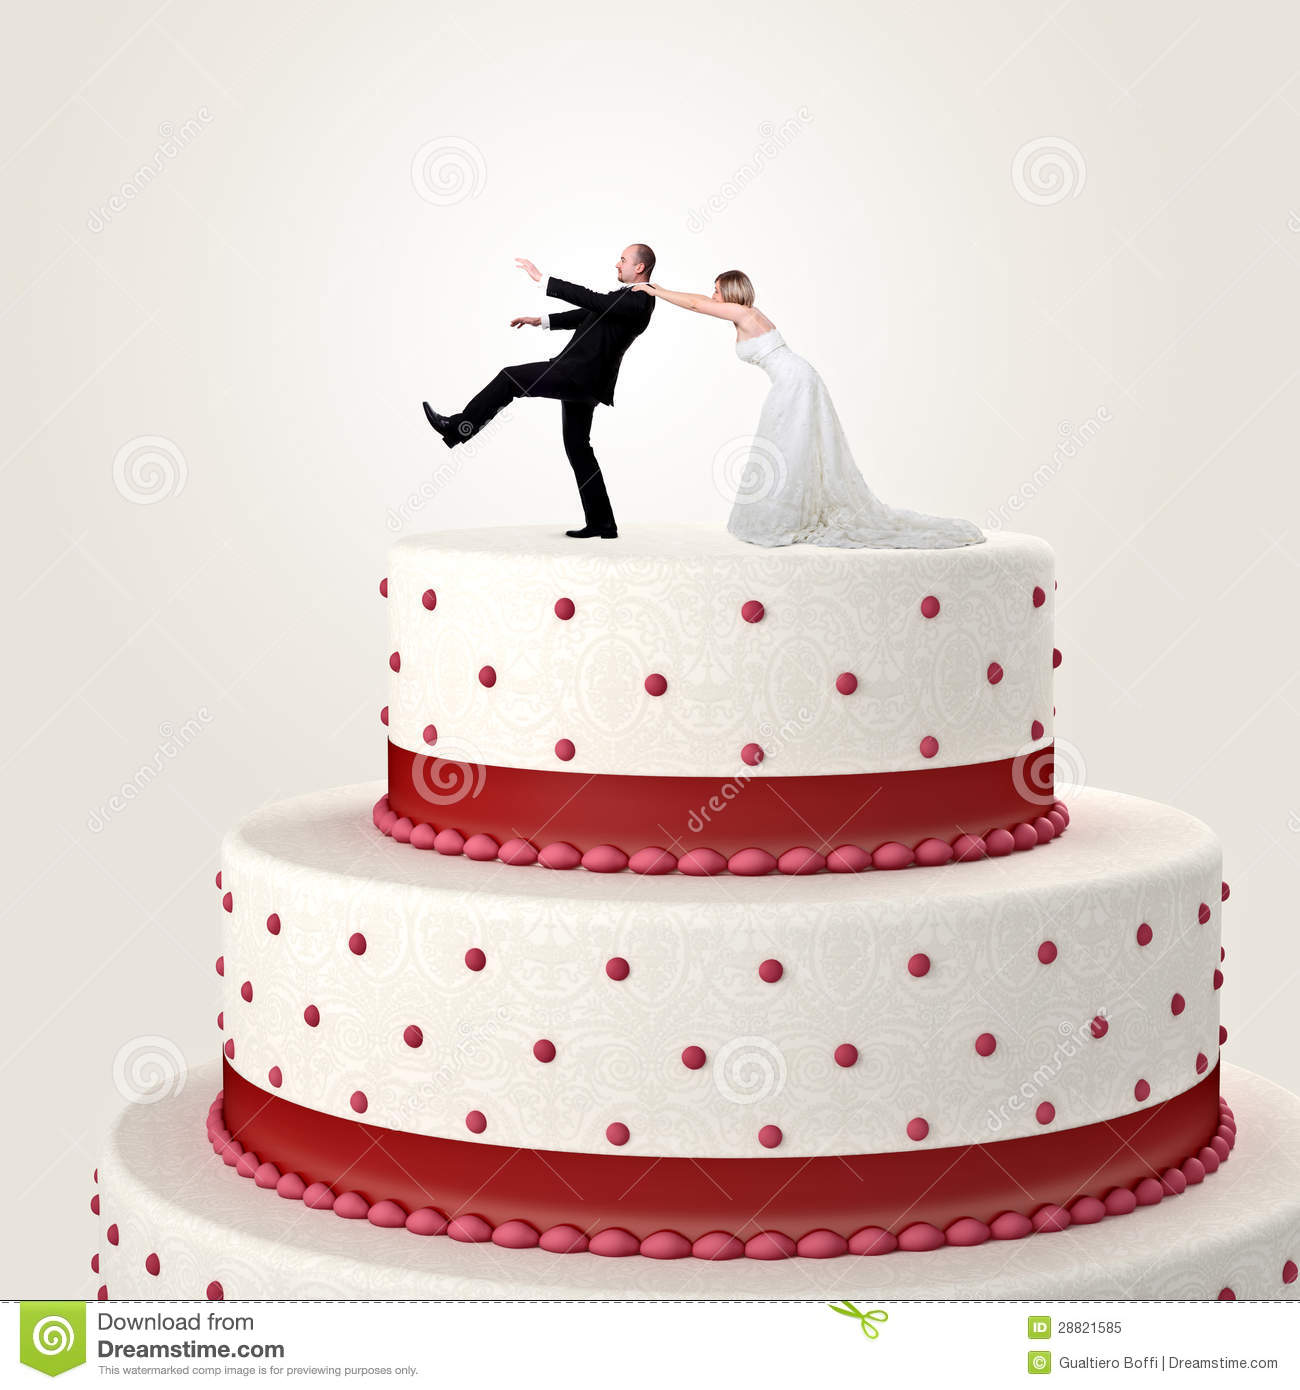 Wedding Funny Cake Stock Image Image Of Topper Cake